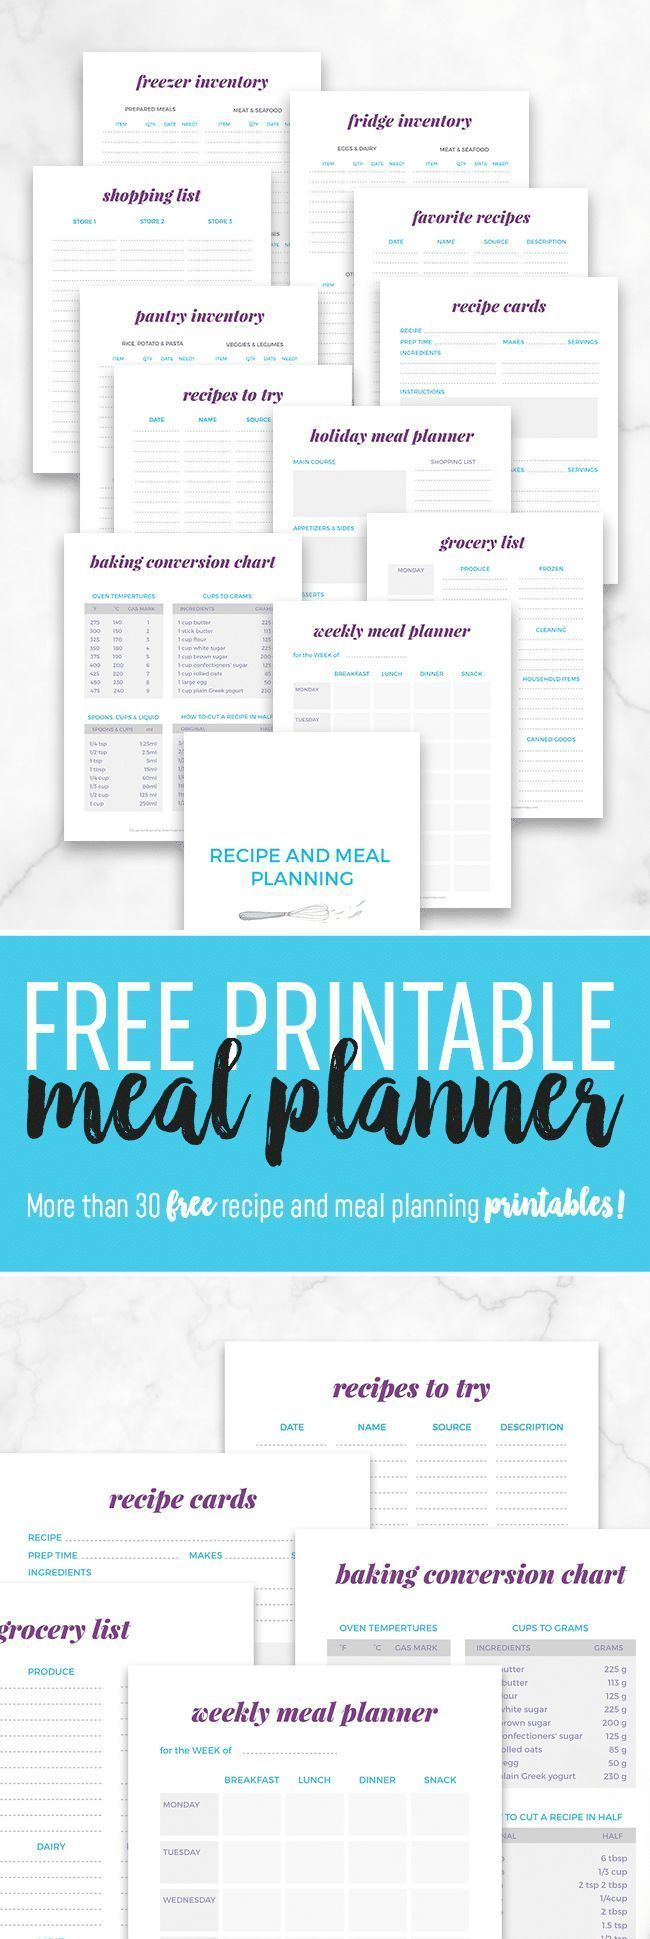 Our free printable meal planner is a great way to organize your fridge, freezer and pantry and plan...